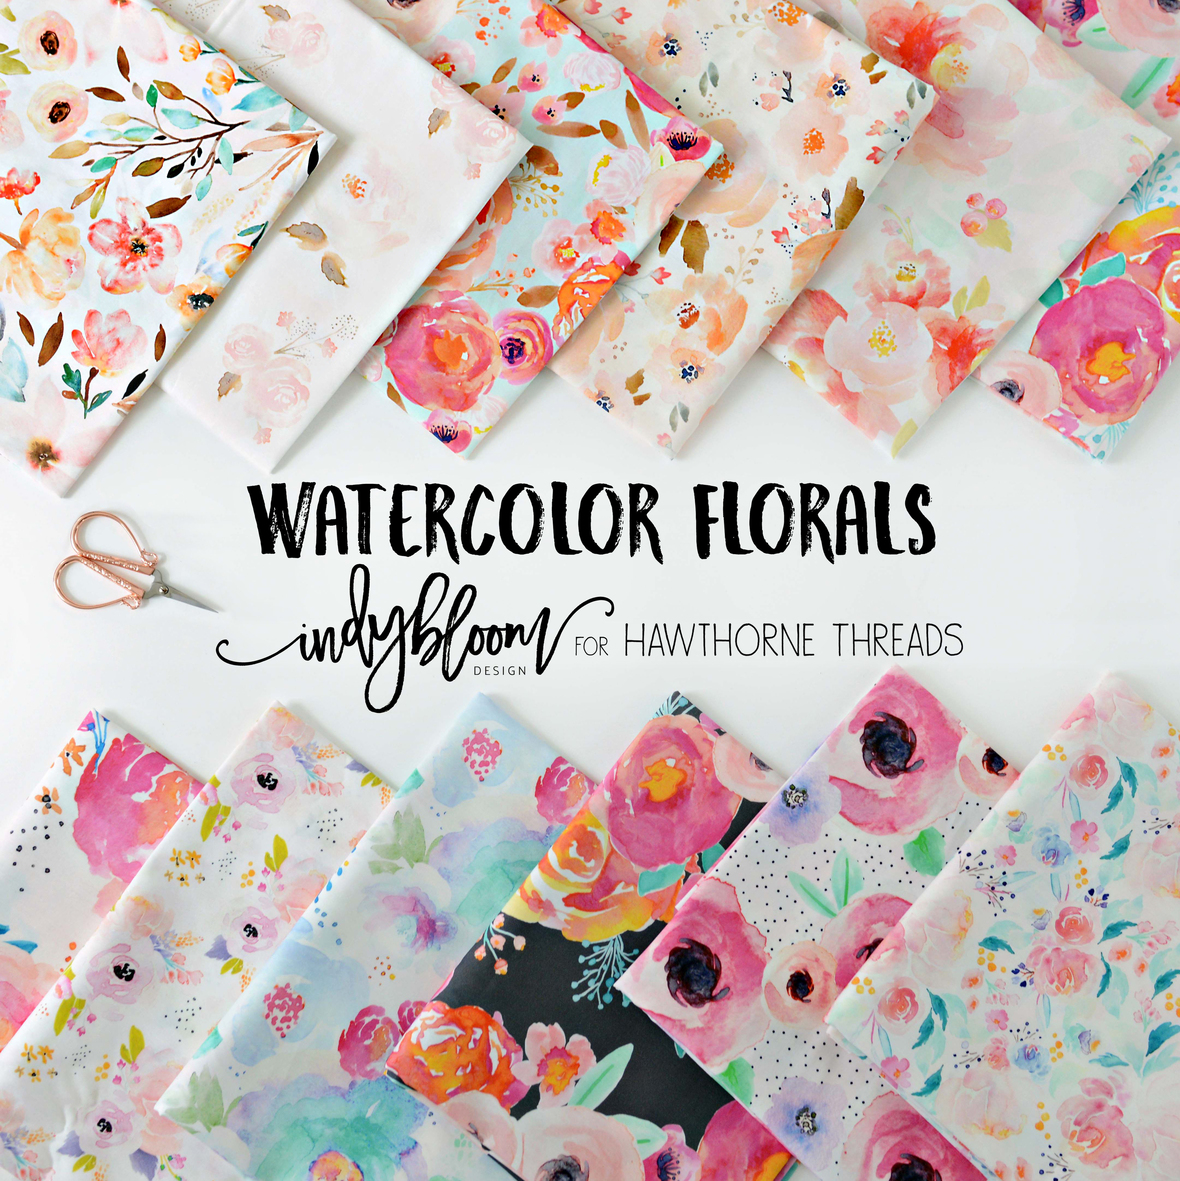 Watercolor Florals Fabric Indy Bloom for Hawthorne Threads Final Poster JPG